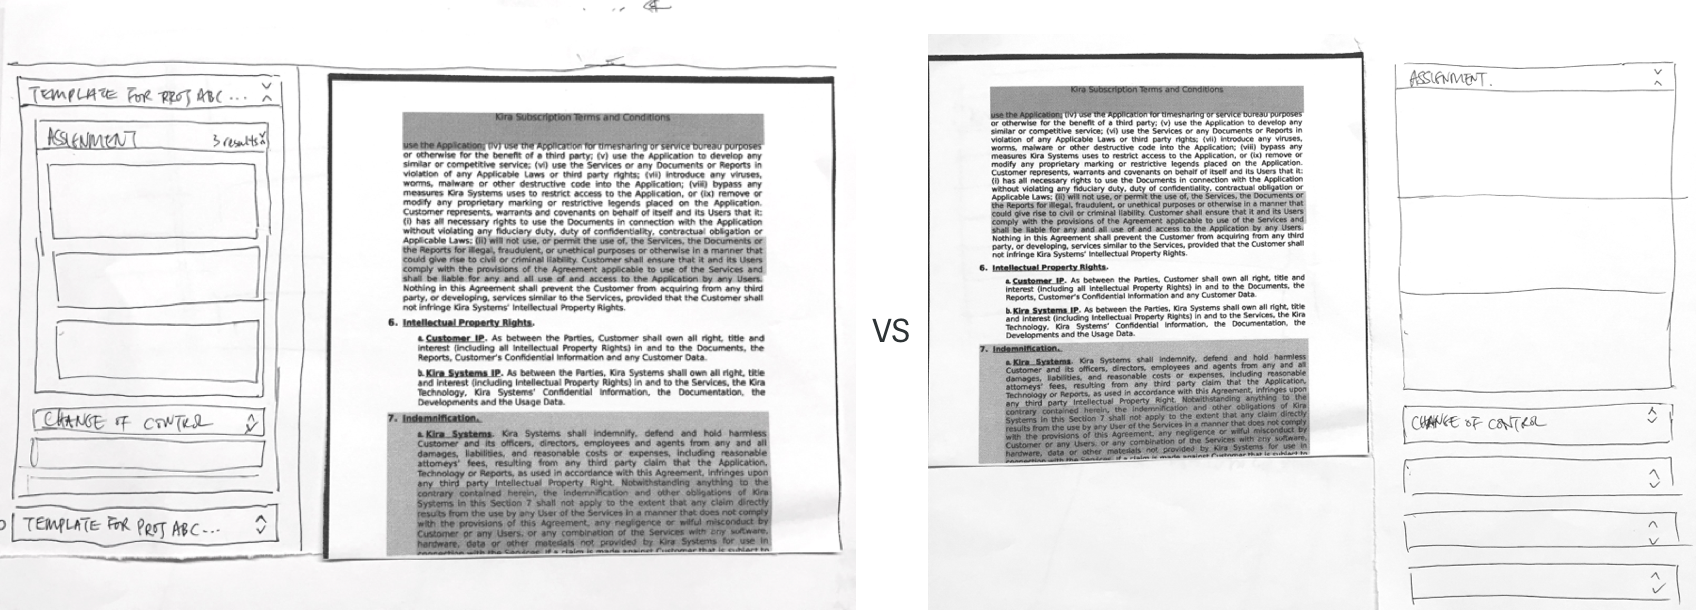 Testing the layout with paper prototypes — turns out document on the left and summary on the right feels more familiar for people.